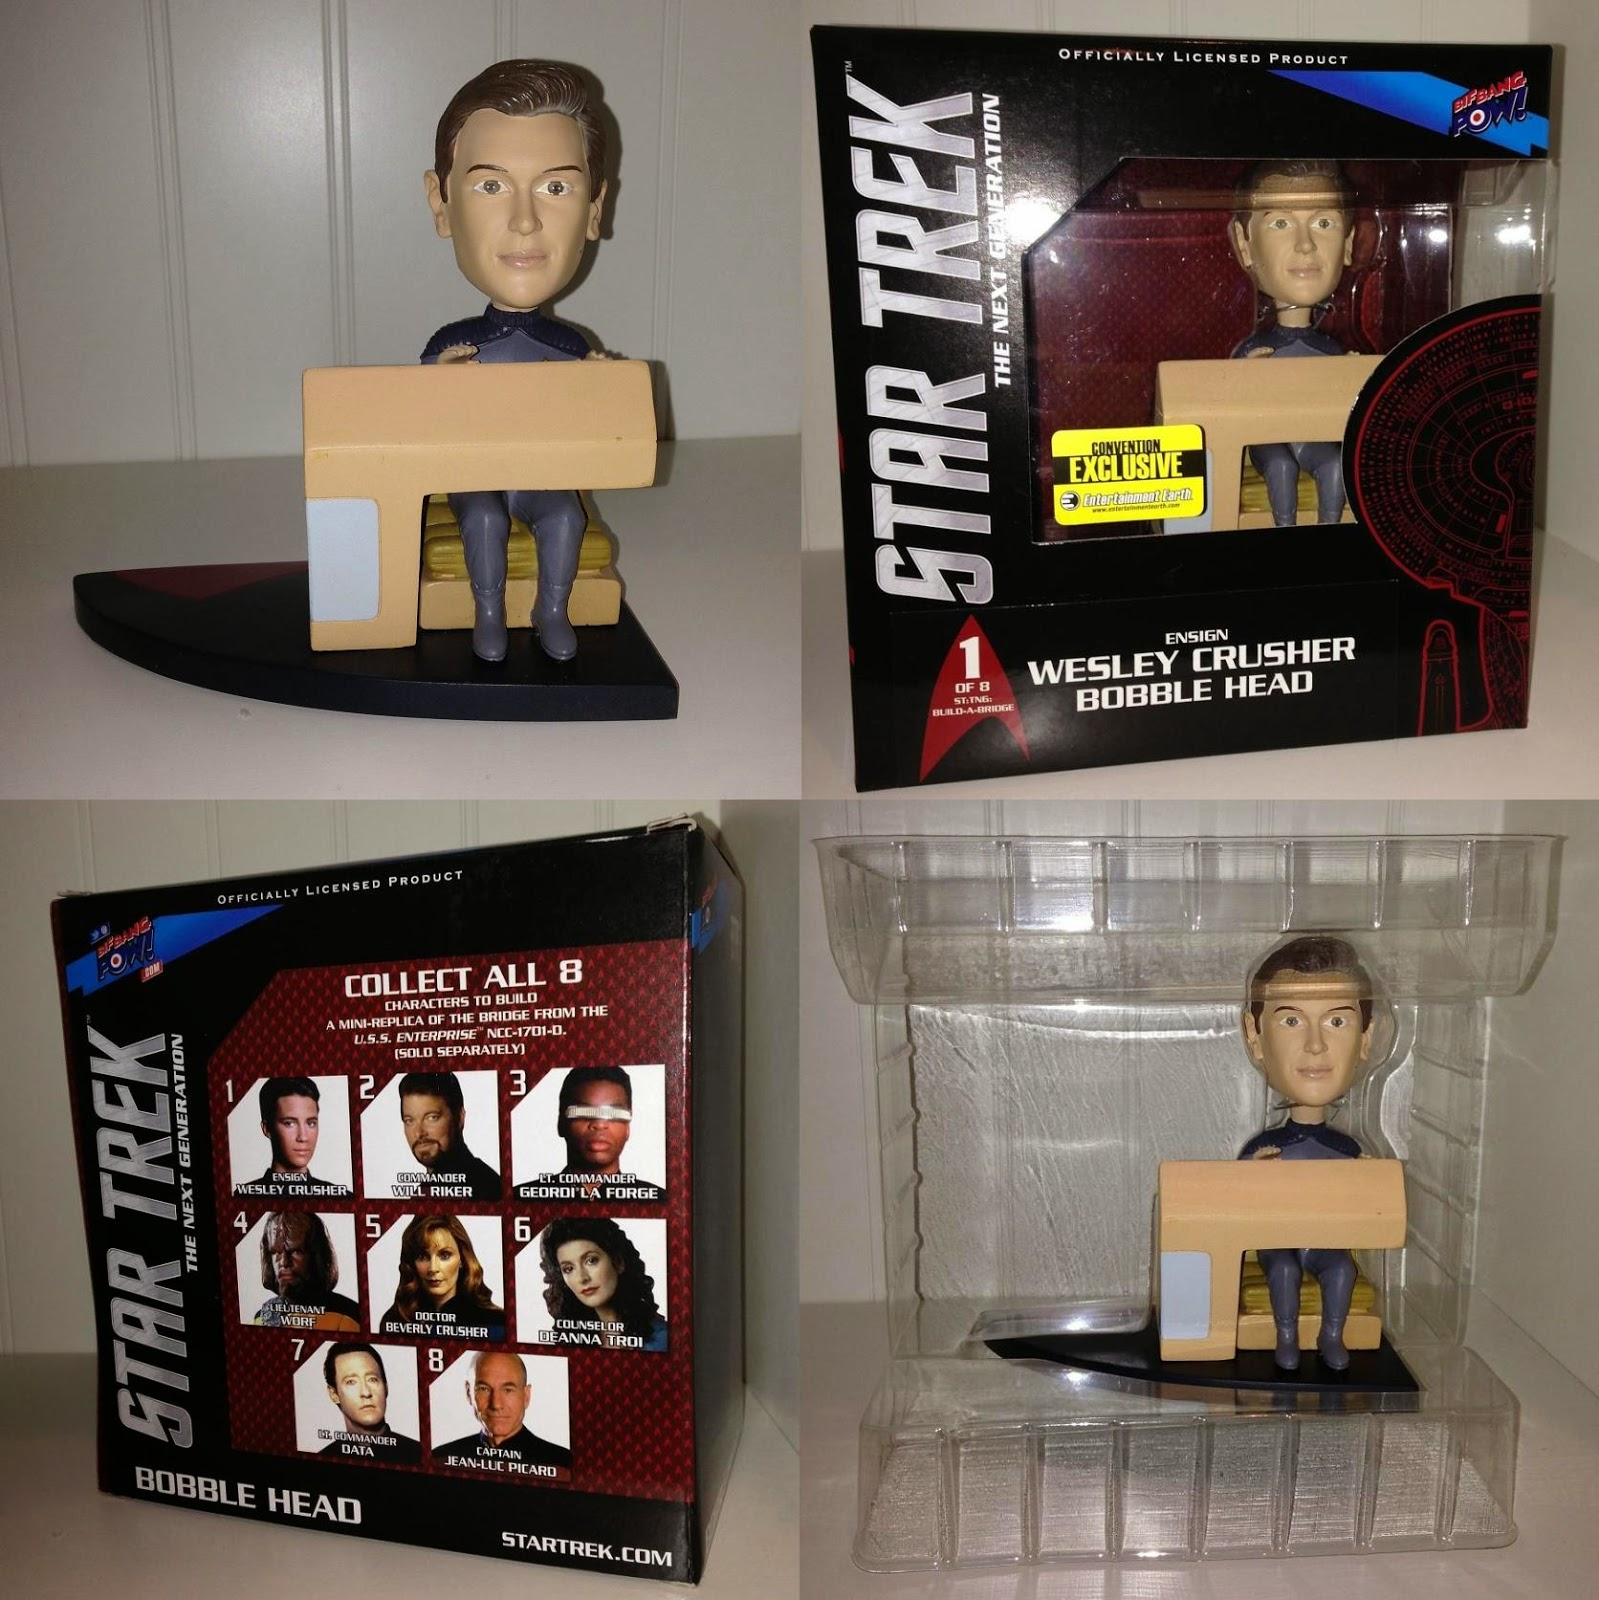 Toy Review: San Diego Comic-Con 2013 Exclusive Star Trek: The Next Generation Wesley Crusher Build-a-Bridge Bobble Head by Bif Bang Pow! & Entertainment Earth